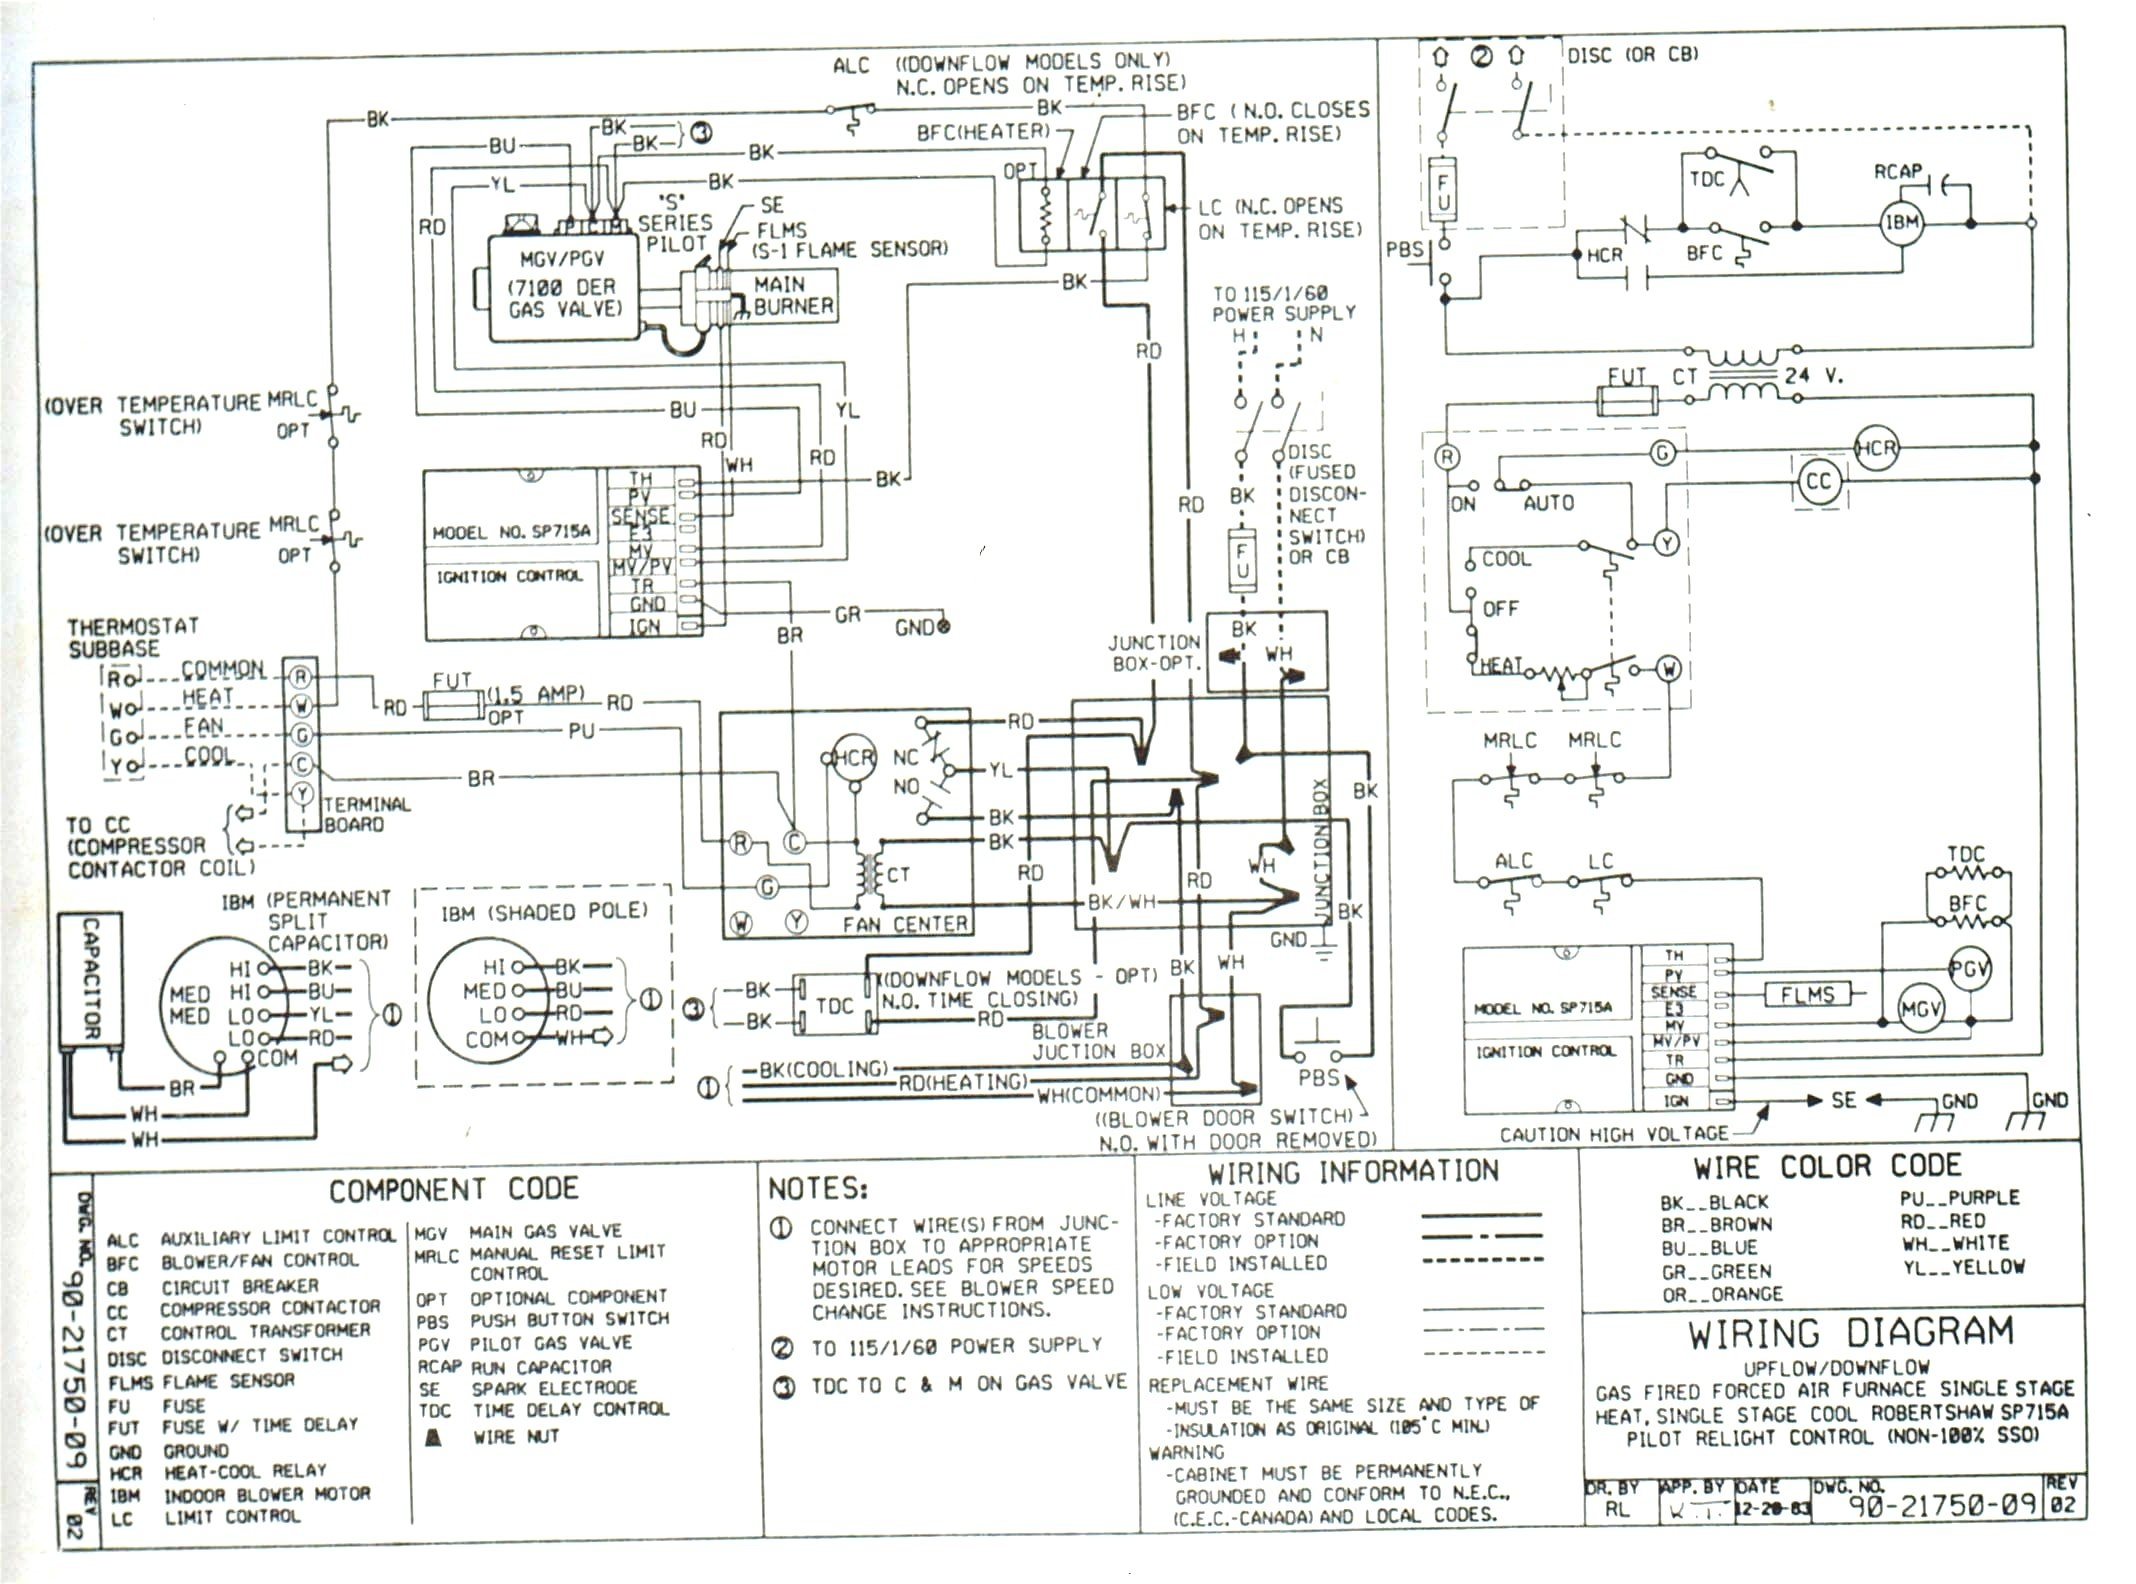 goodman aruf air handler wiring diagram Collection-Goodman Aruf Air Handler Wiring Diagram Beautiful Wiring Diagram Goodman Electric Furnace In Throughout Carrier Ac 14-i